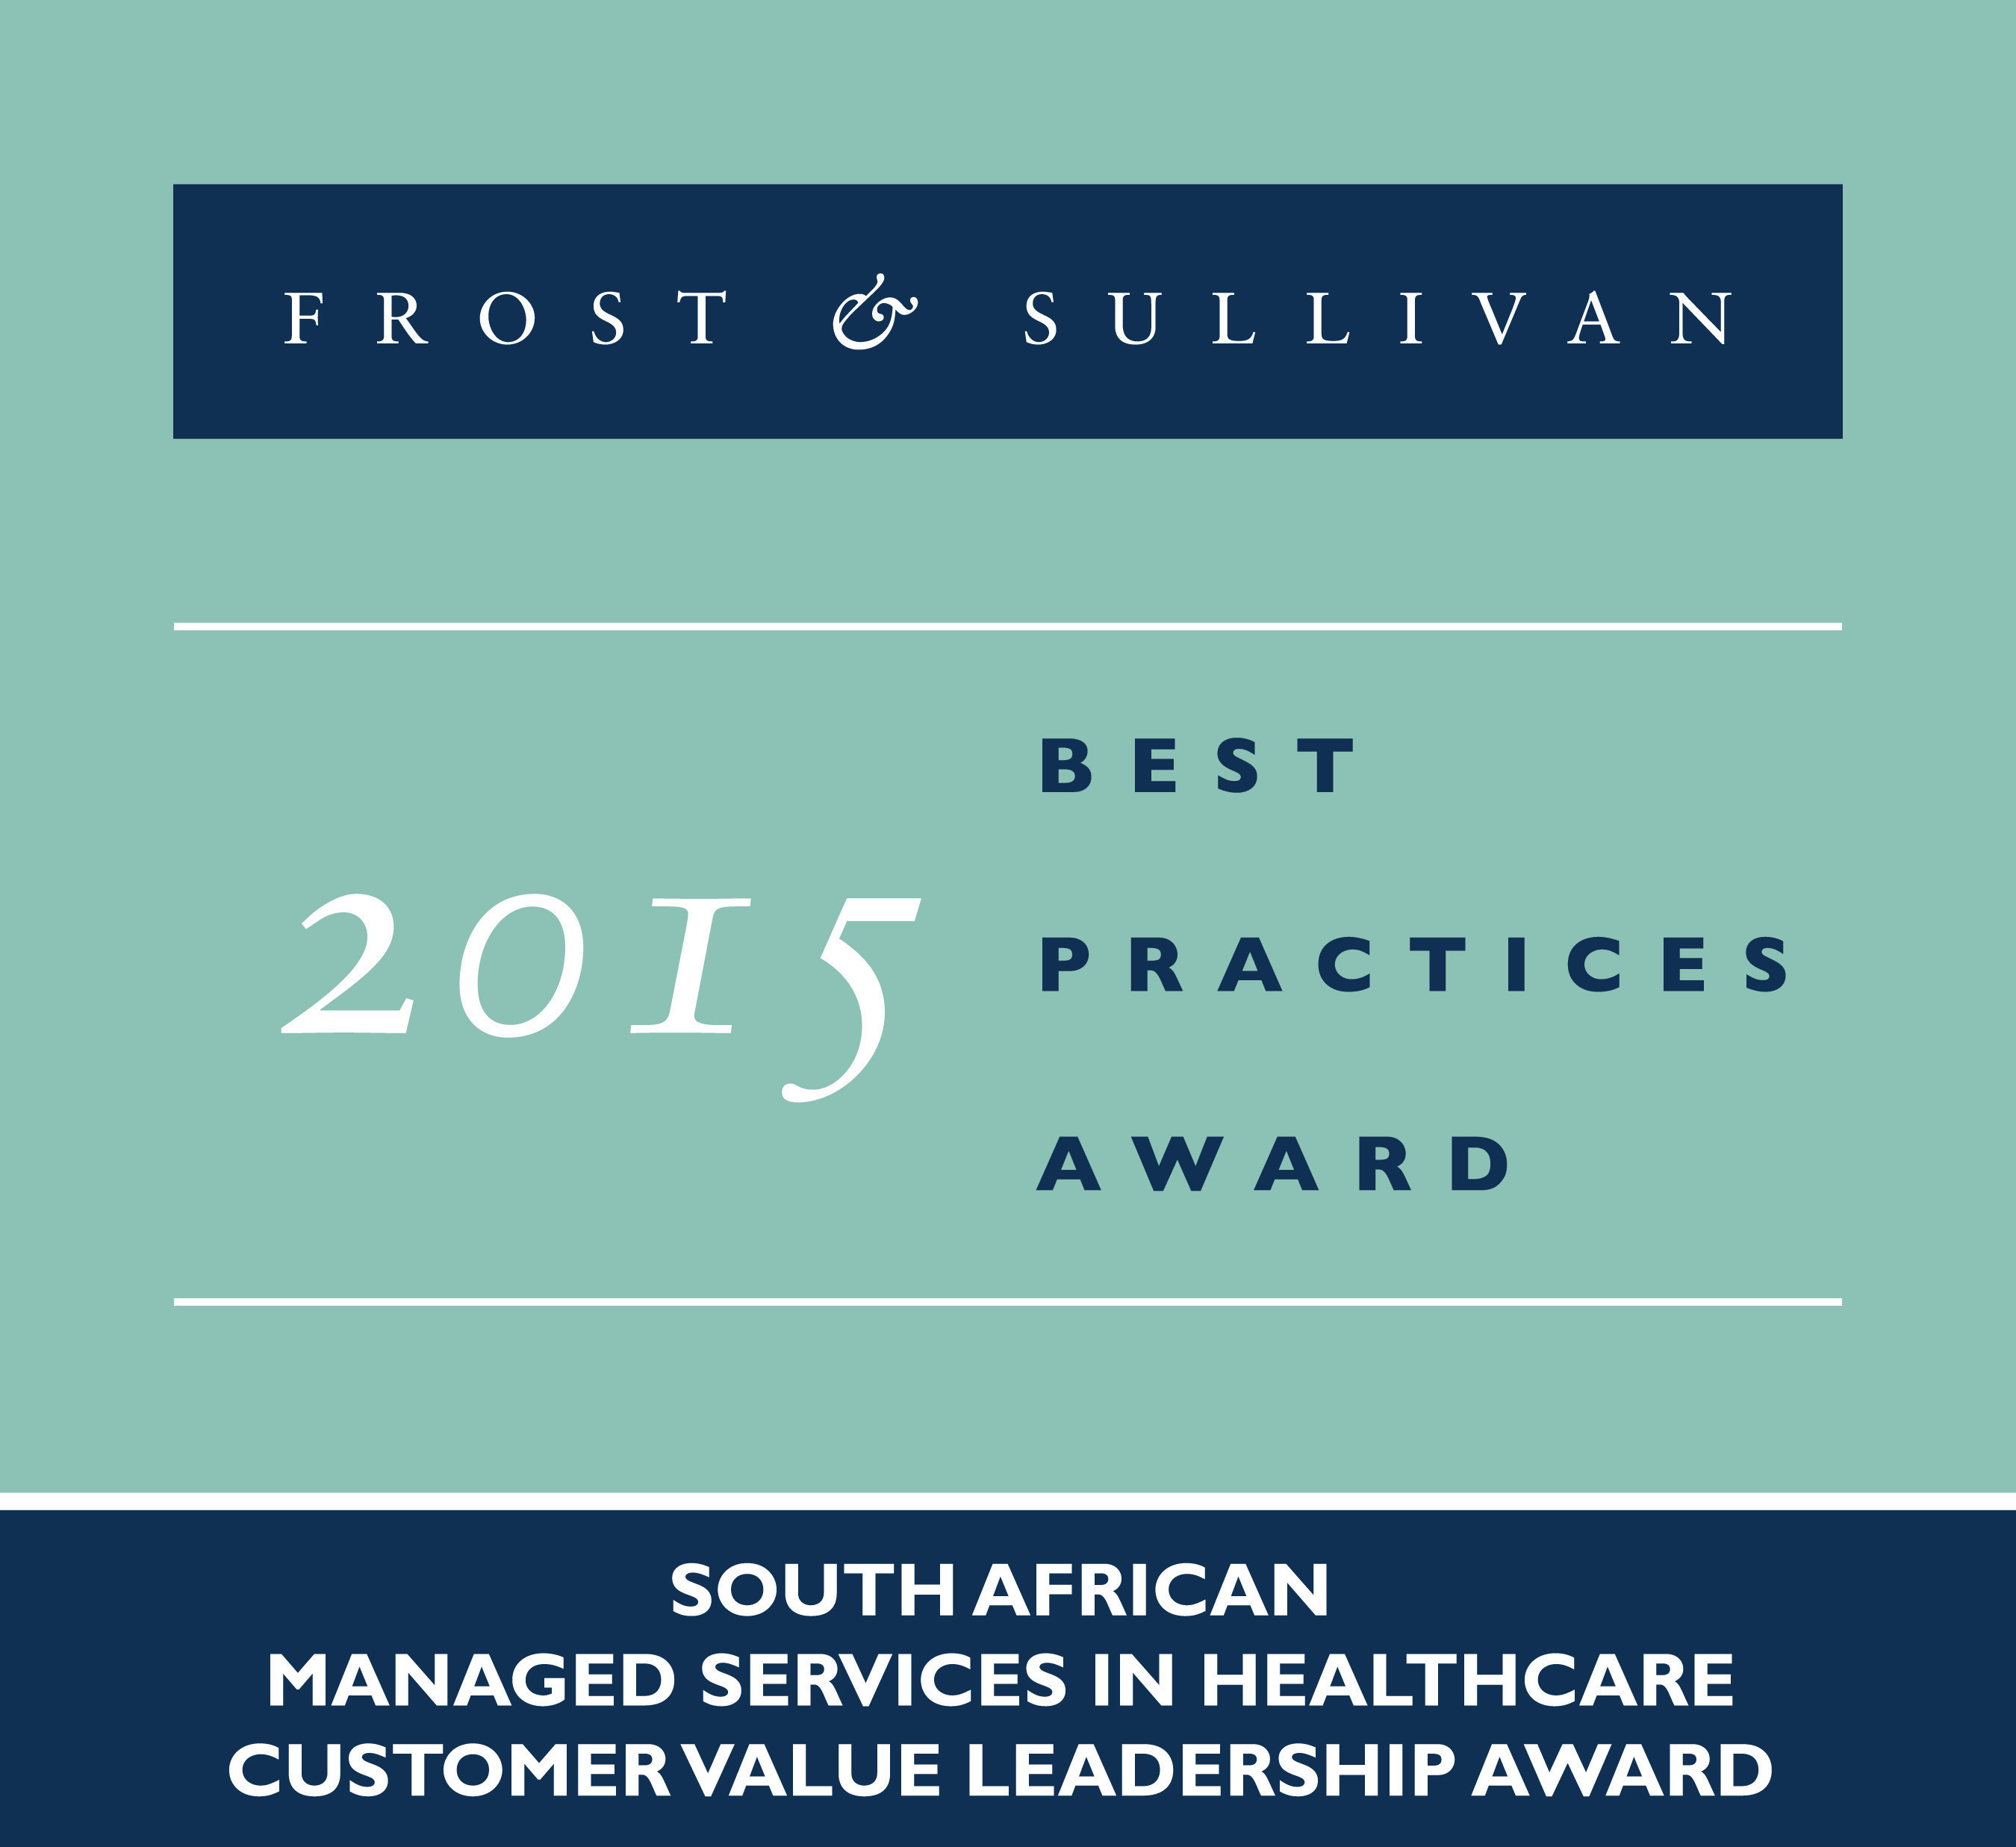 Frost & Sullivan Recognizes T-Systems for the Unparalleled Customer Value it Offers South African Healthcare Clients as a Managed Services Provider